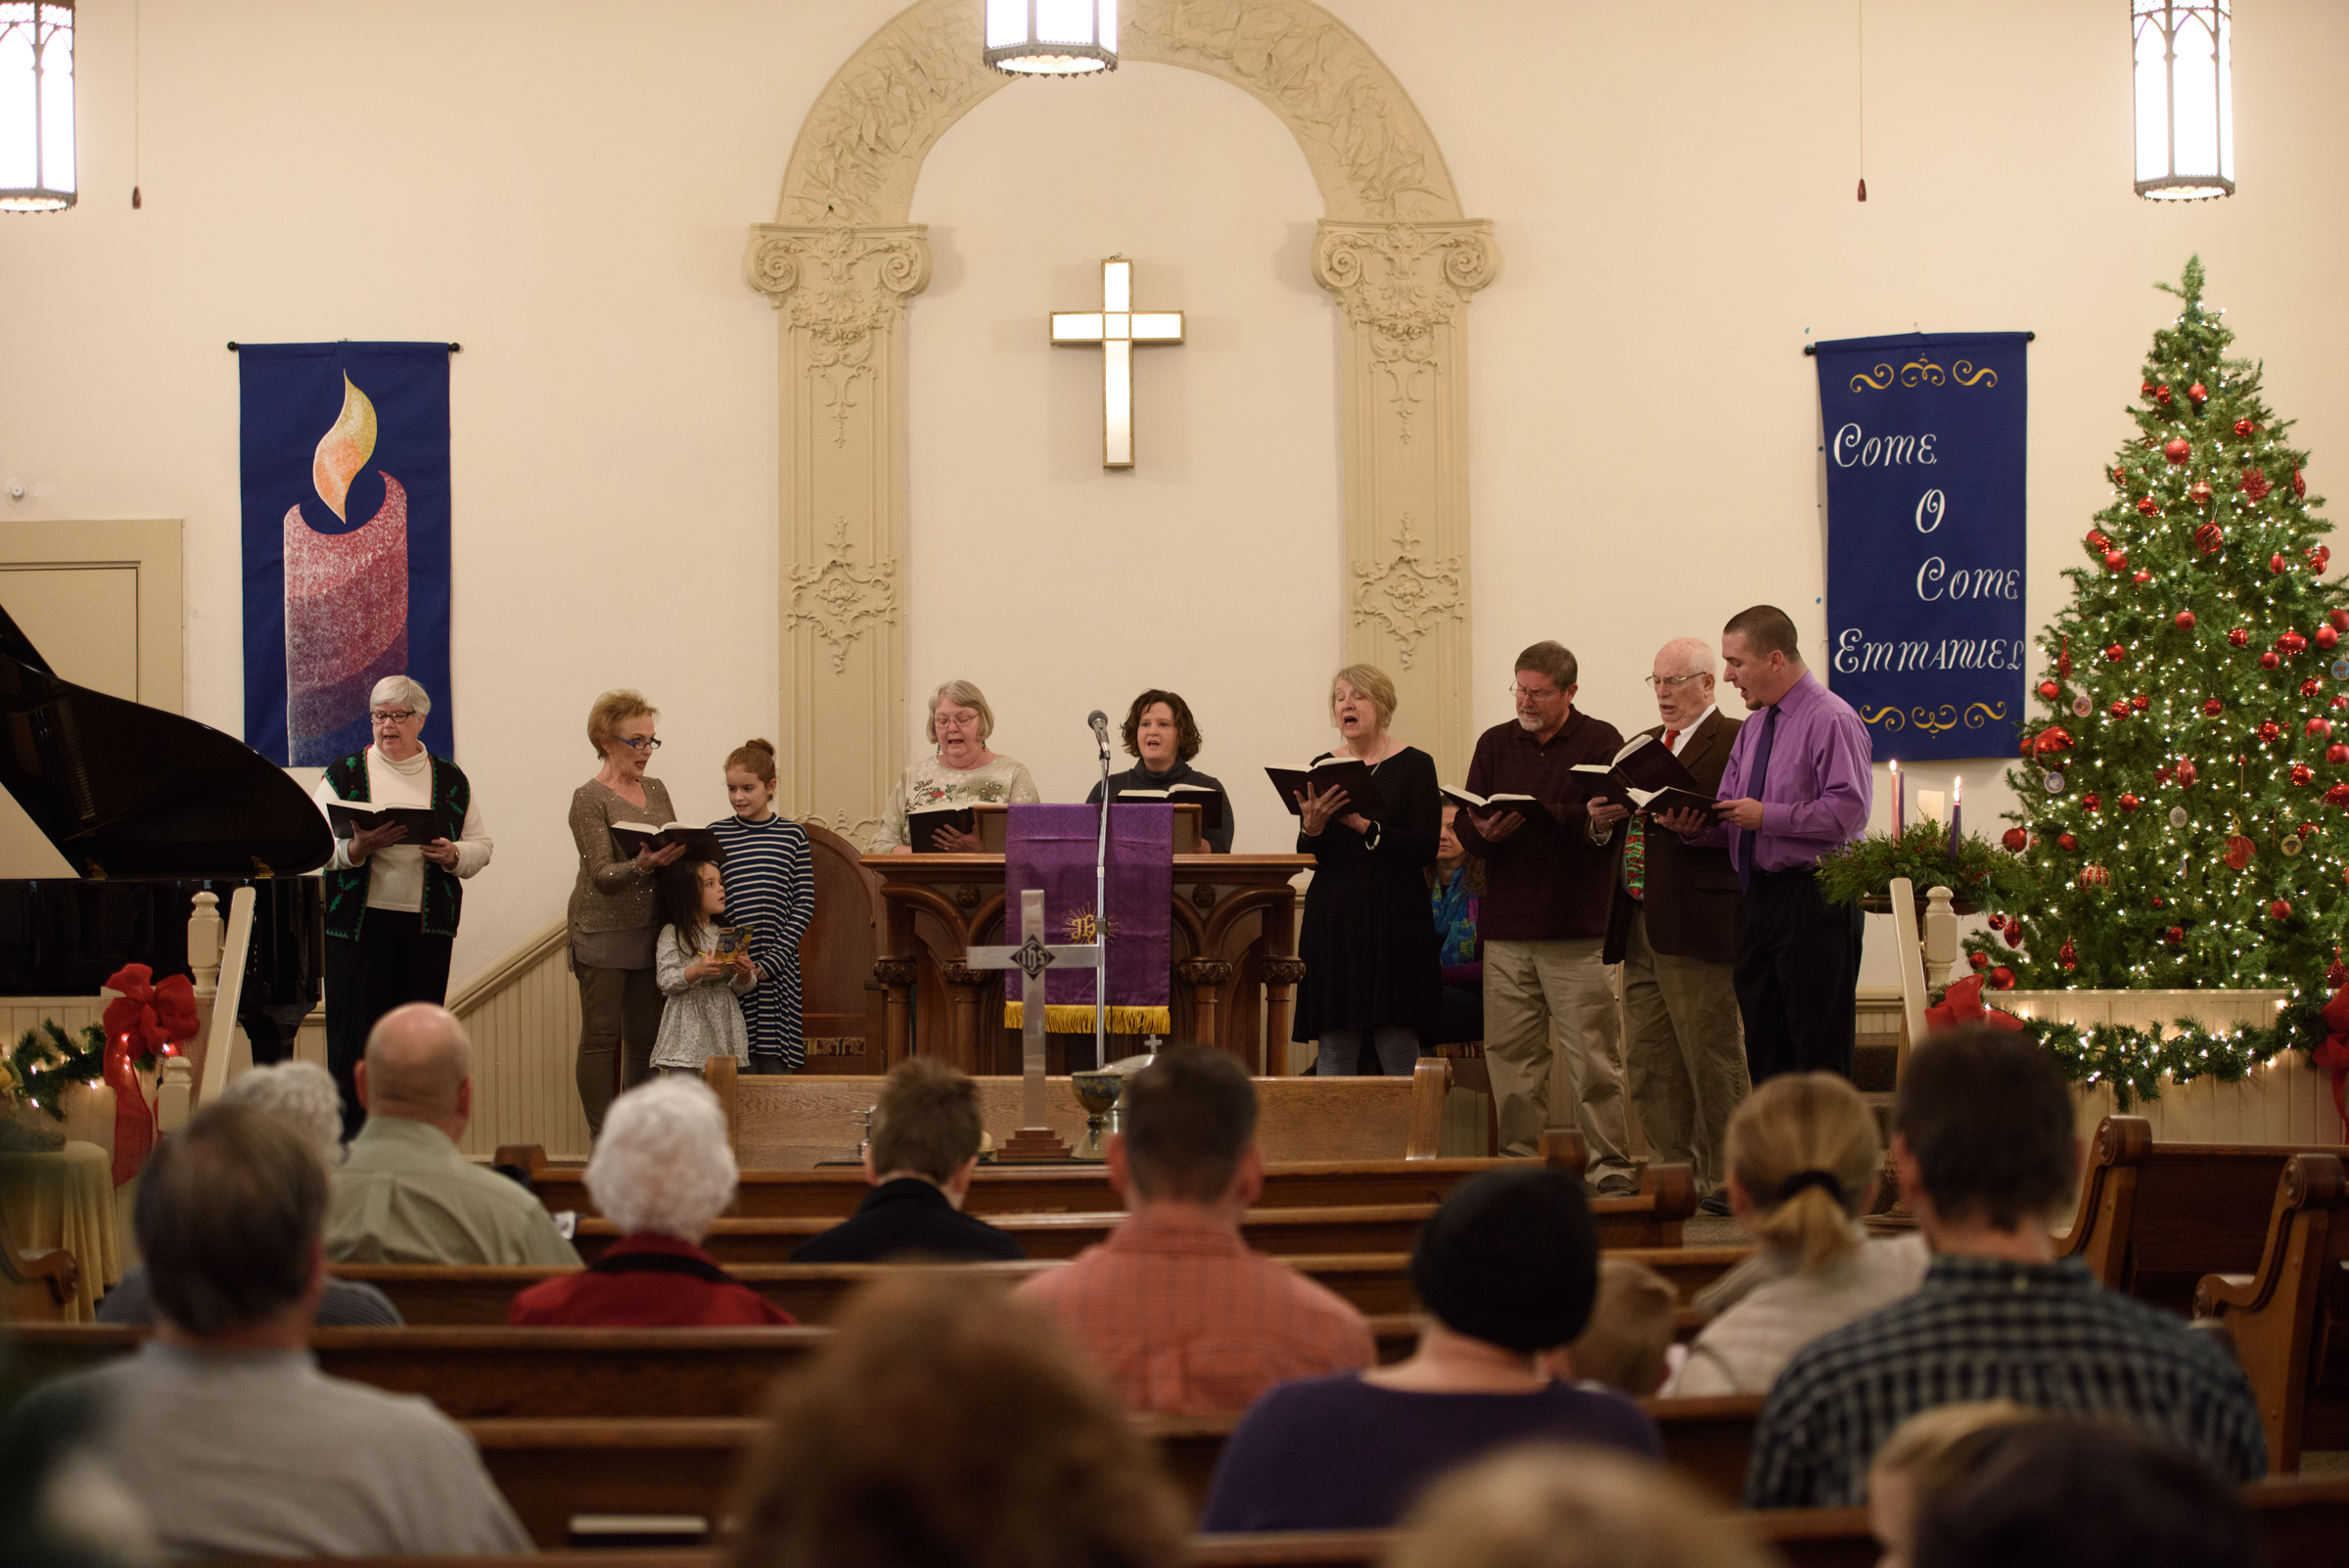 Some of the fine singers at Oxford Christian Church lifting their voices in praise.